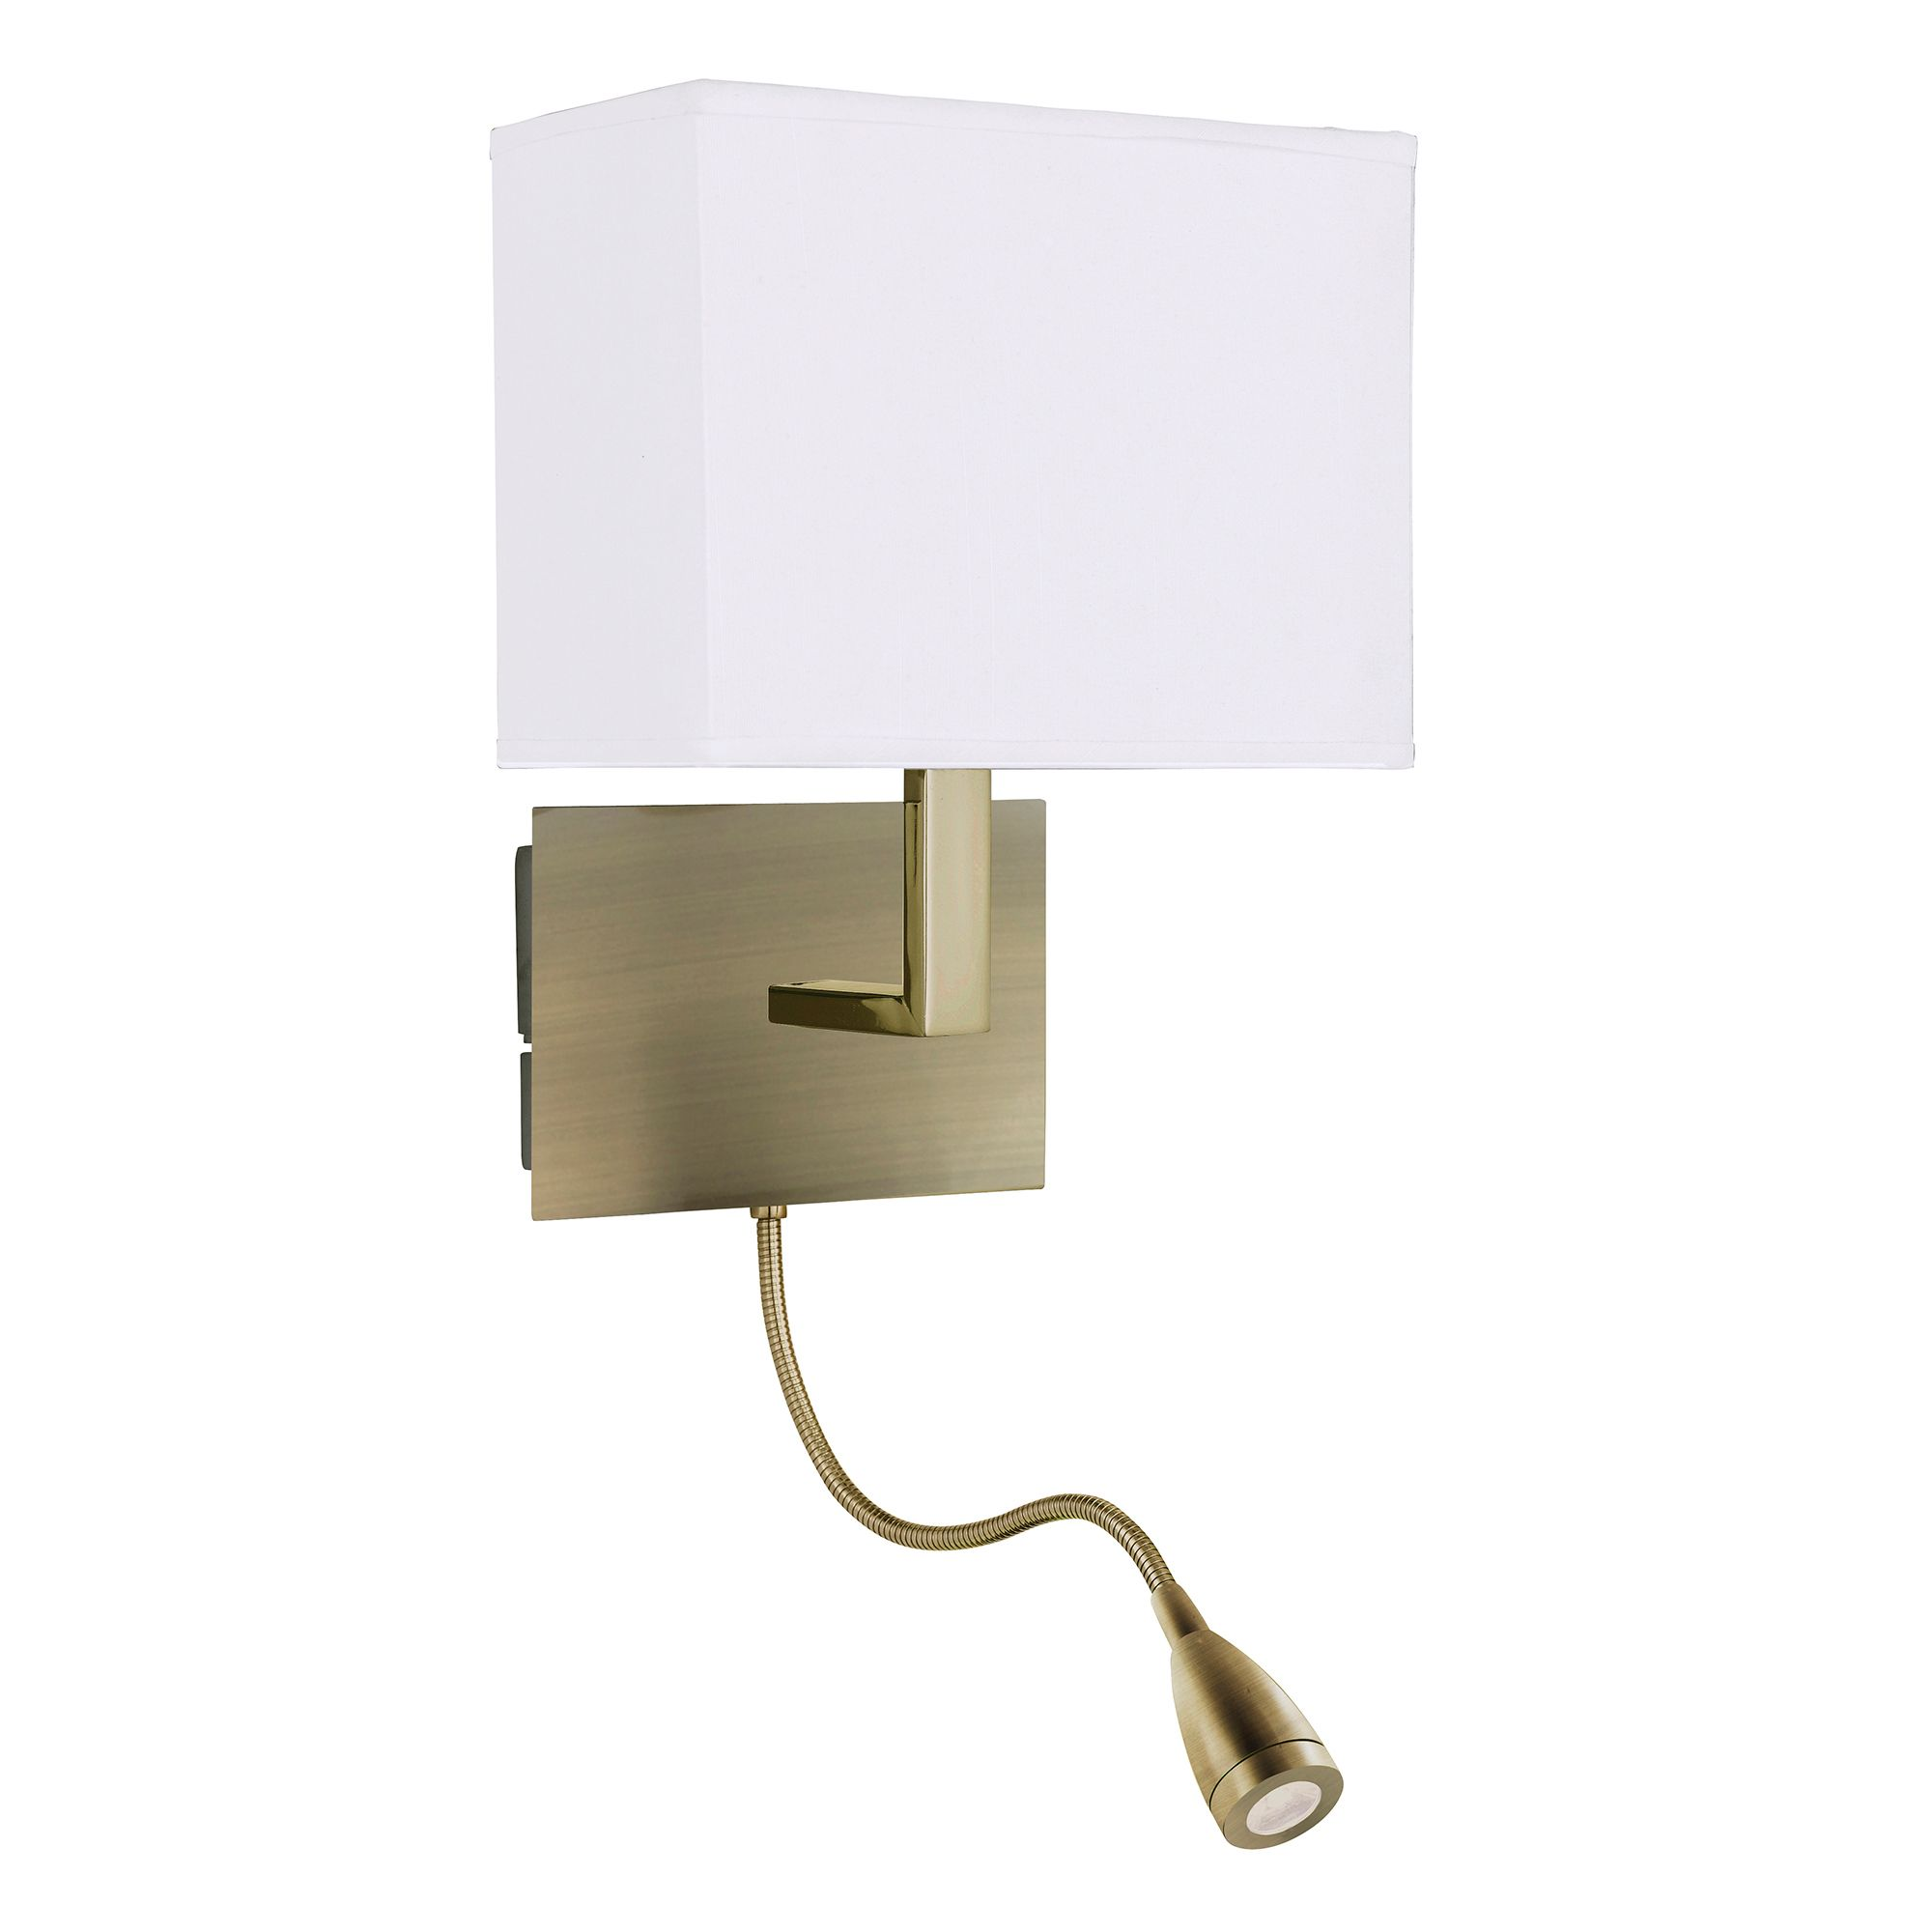 A Great Combination Of Practicality And Style The Maddox Led Integral Wall Light Is A Great 2 In 1 Light Fitting Ideal For Bedside Wall Lights Sconces Indoor Wall Lights